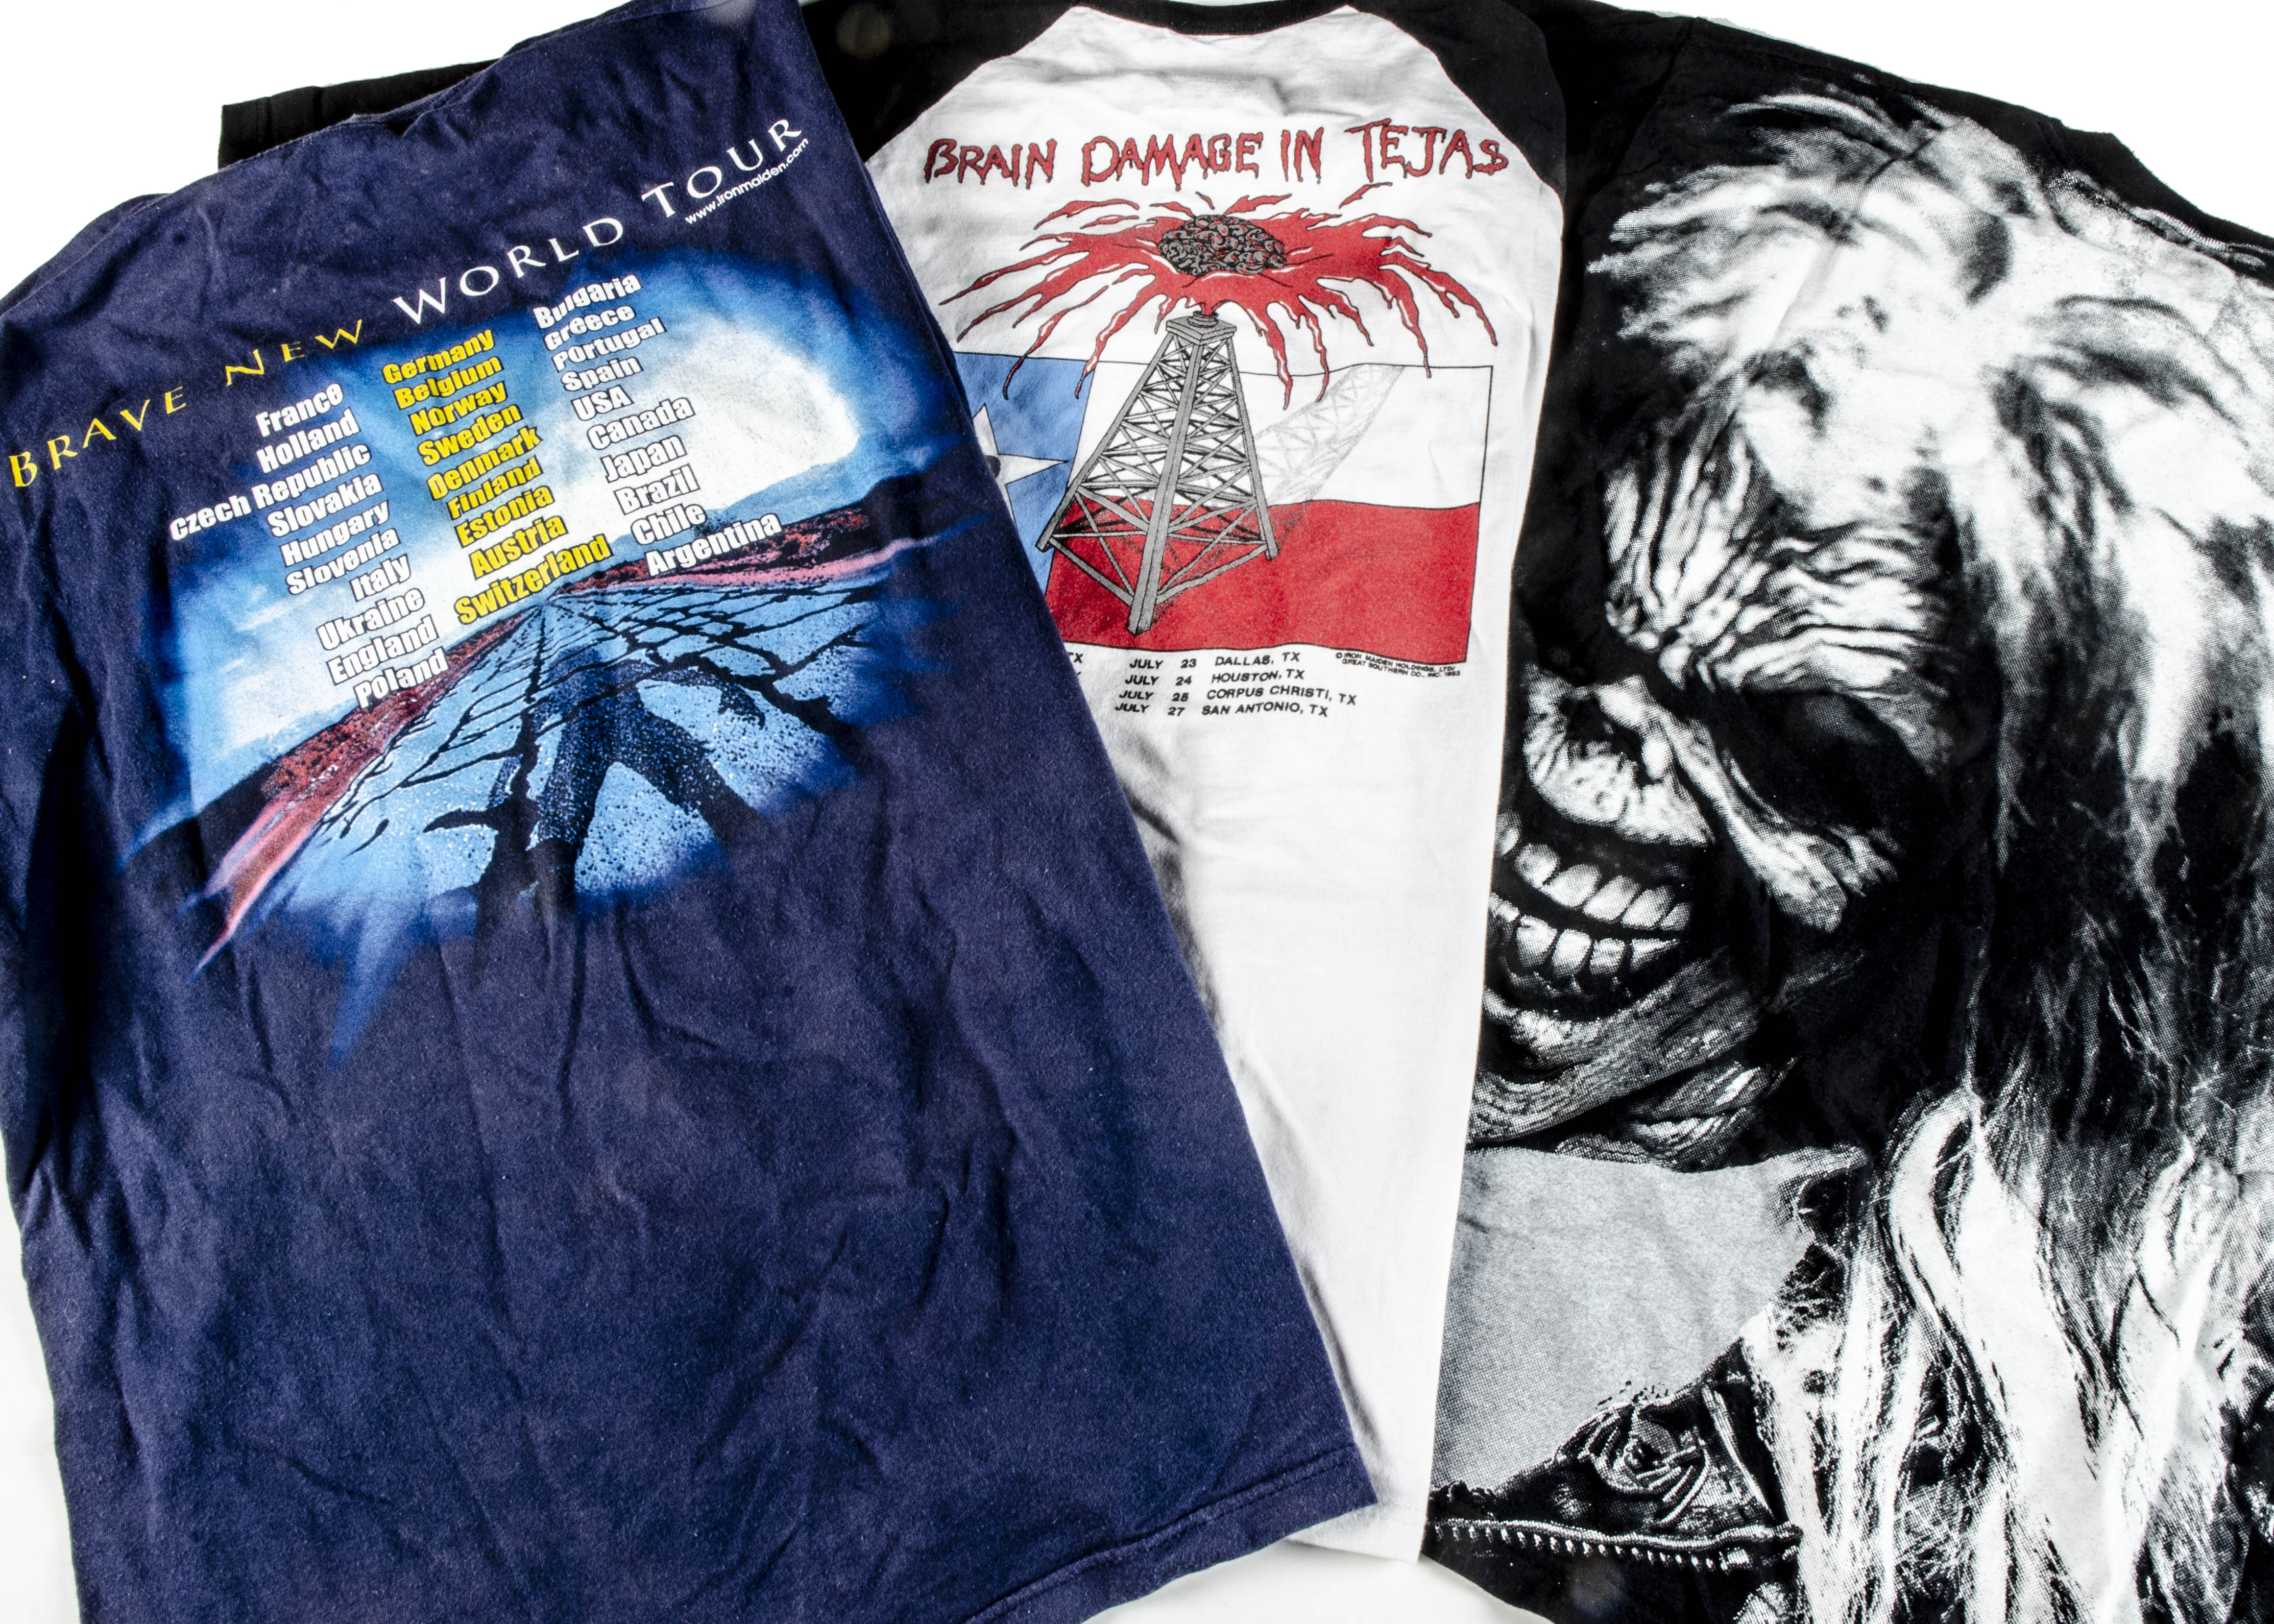 Iron Maiden 'T' Shirts, three Iron Maiden 'T' shirts - Brave New World Tour 2000/01 sized L very - Image 2 of 2